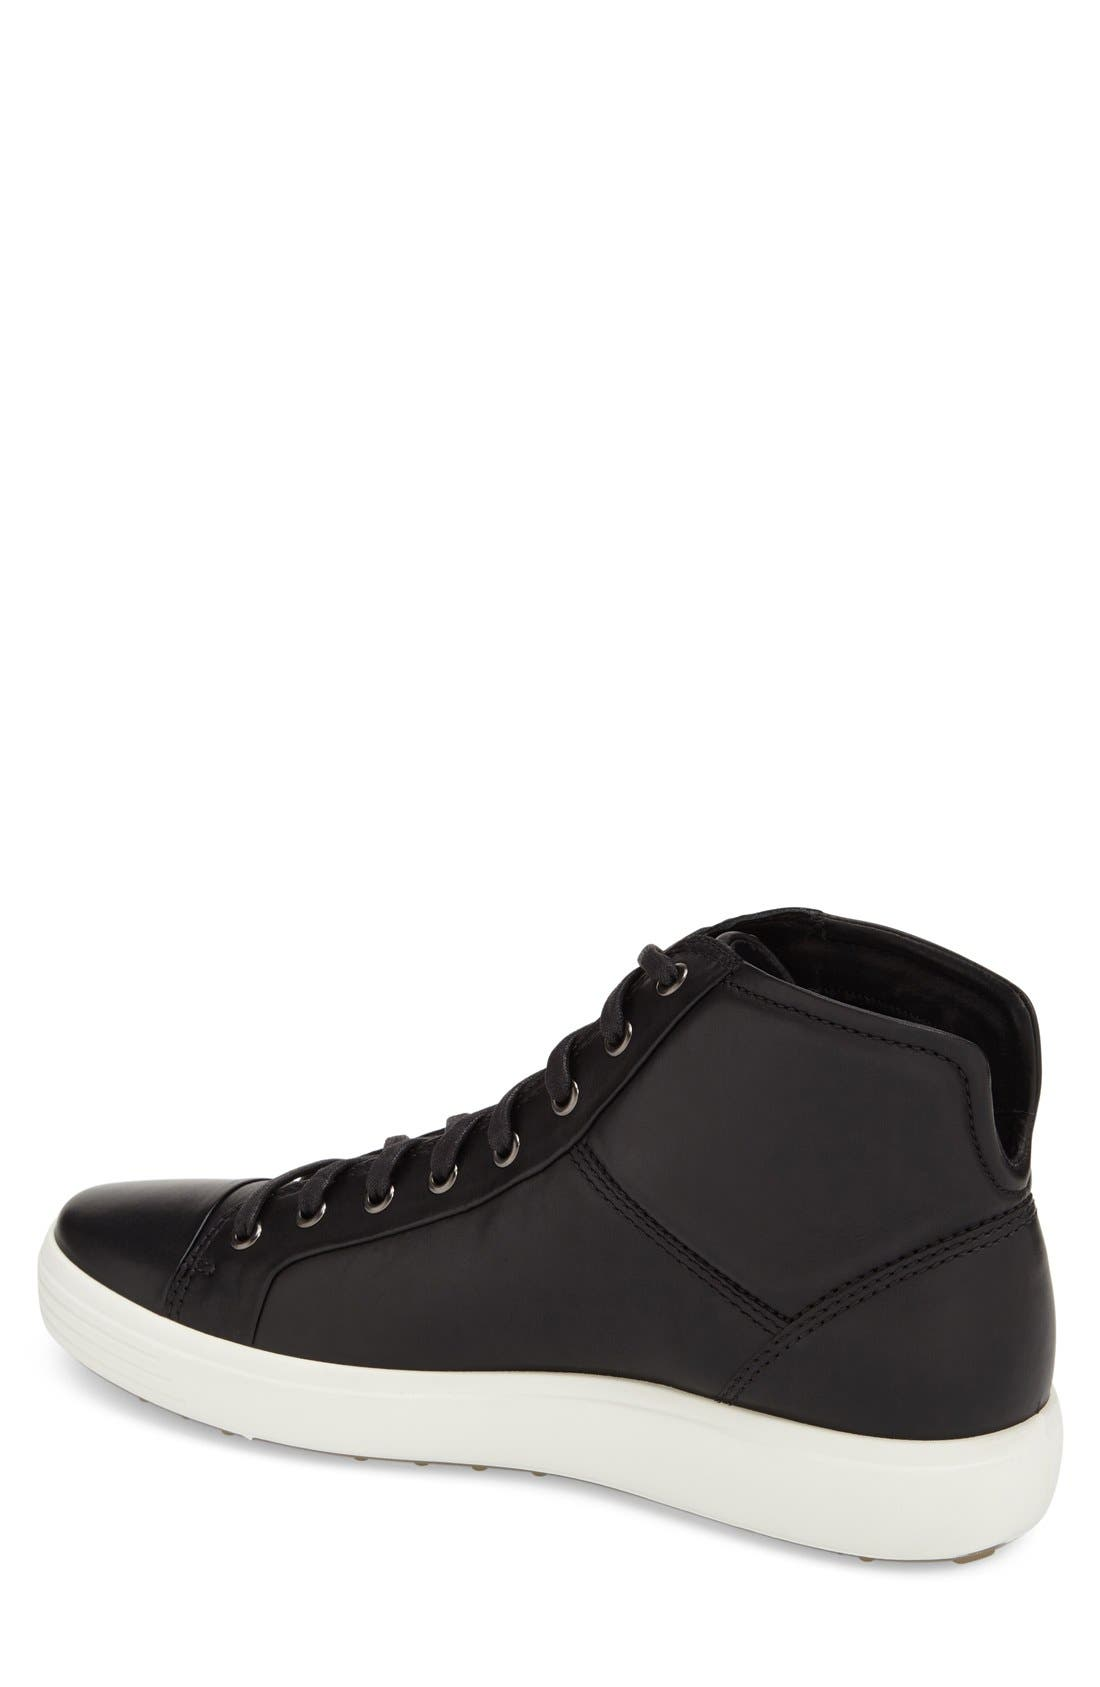 'Soft 7' High Top Sneaker,                             Alternate thumbnail 3, color,                             001